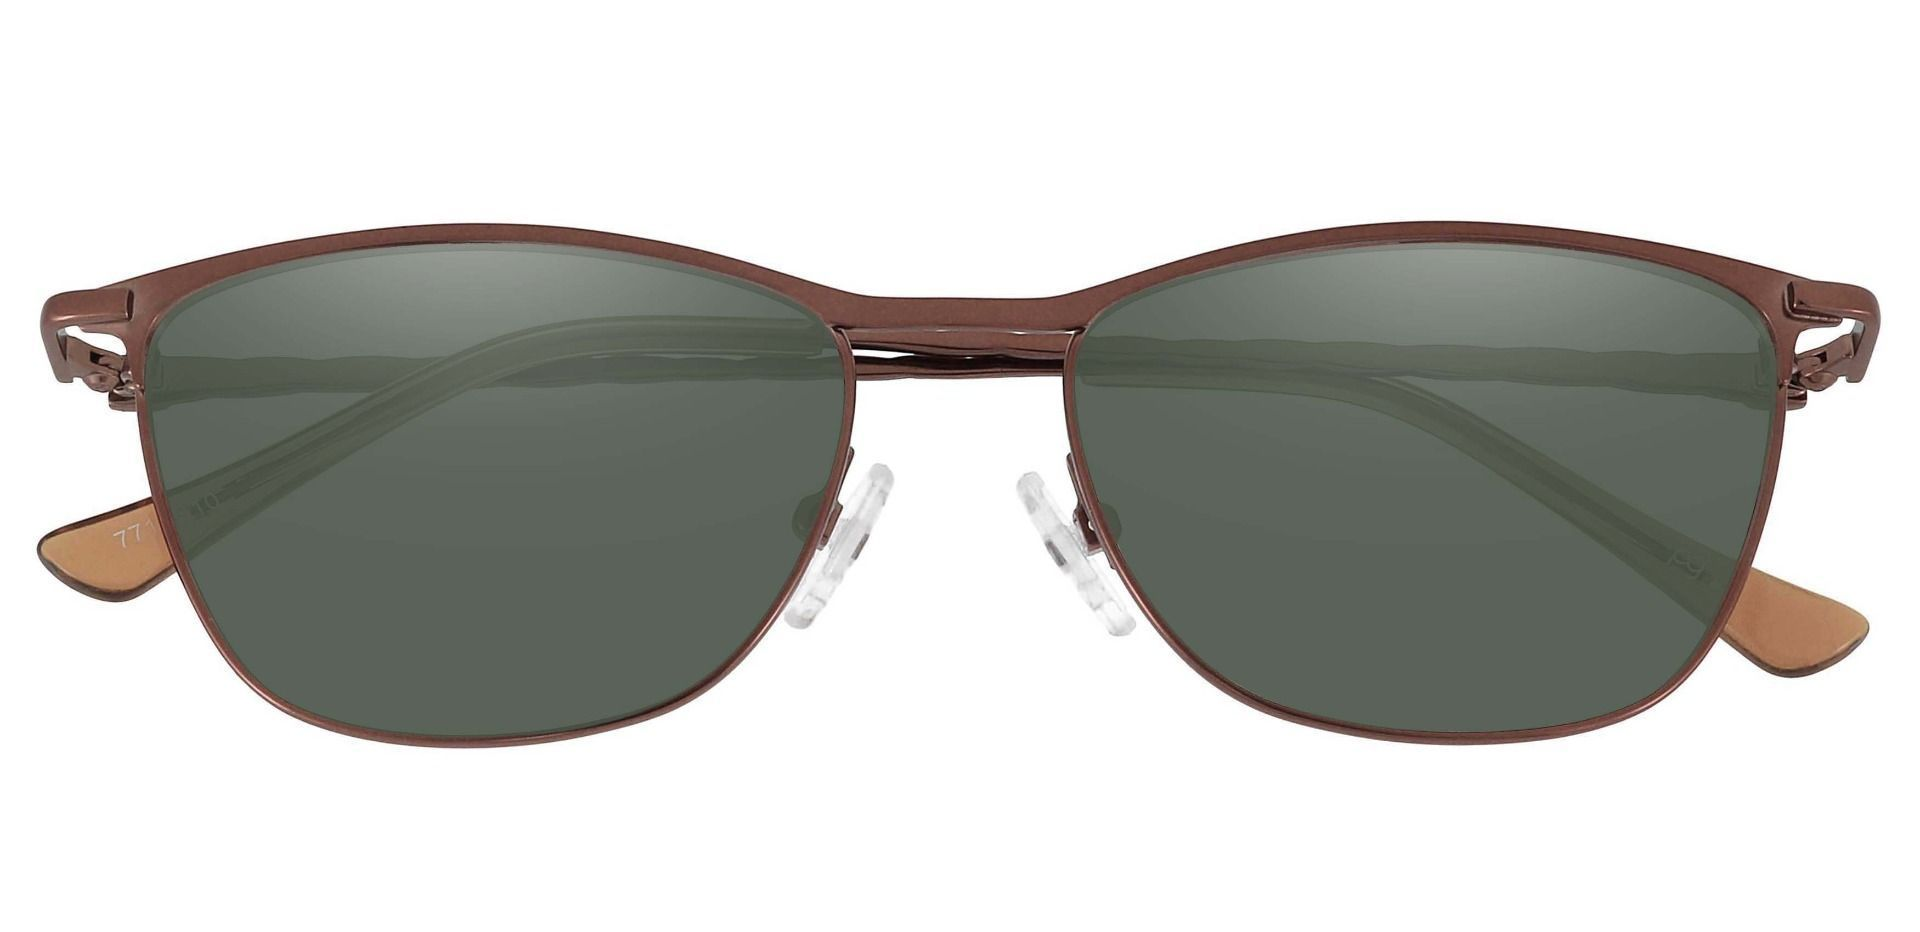 Andrea Cat Eye Non-Rx Sunglasses - Brown Frame With Green Lenses